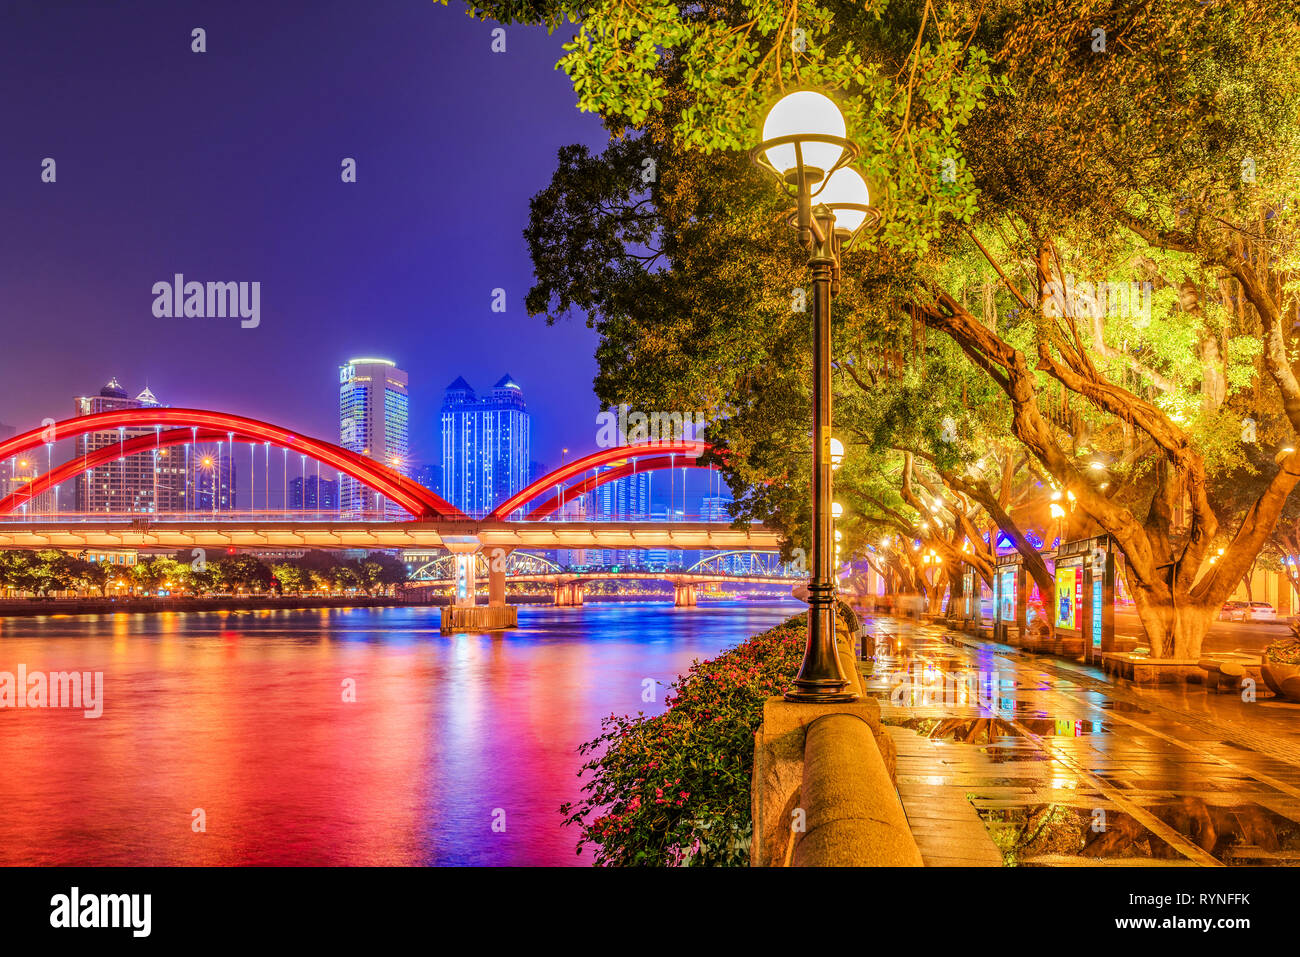 GUANGZHOU, CHINA - OCTOBER 24: Night view of riverside park and the fanous Jiefang Bridge along the Pearl River on October 24, 2018 in Guangzhou - Stock Image